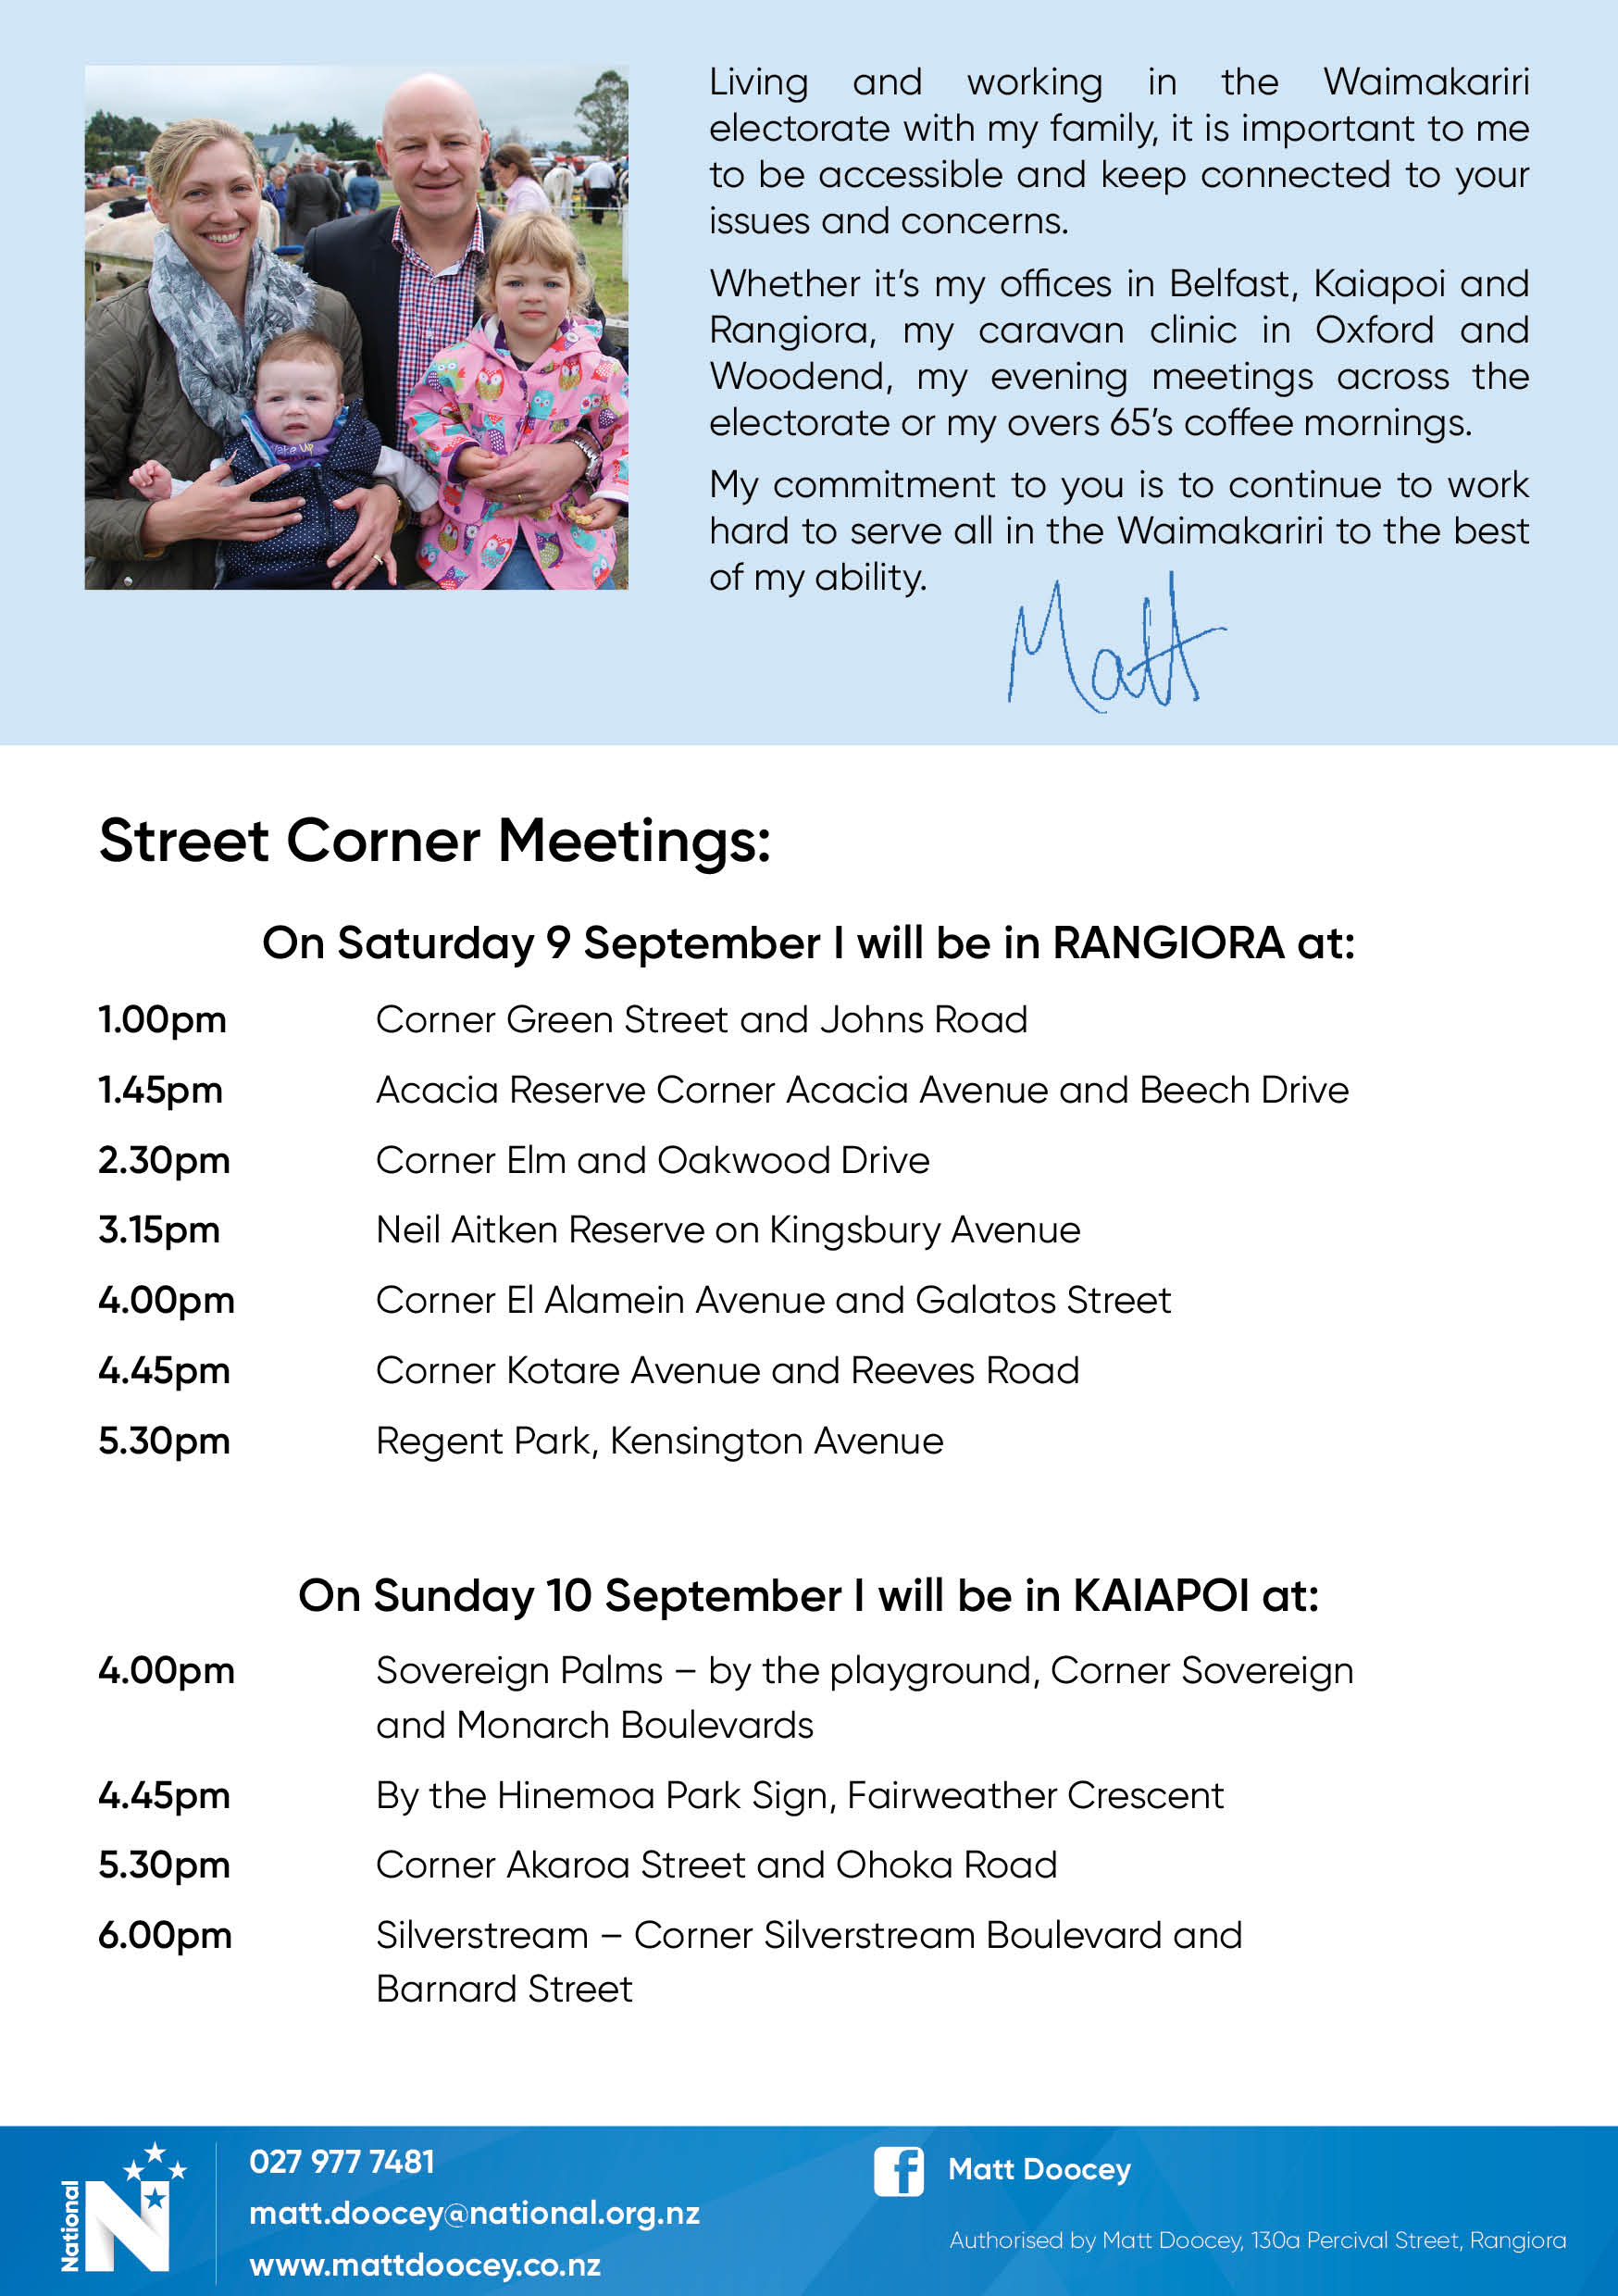 Waimakariri_-_Street_Corner_Meetings_(North)_v12.jpg